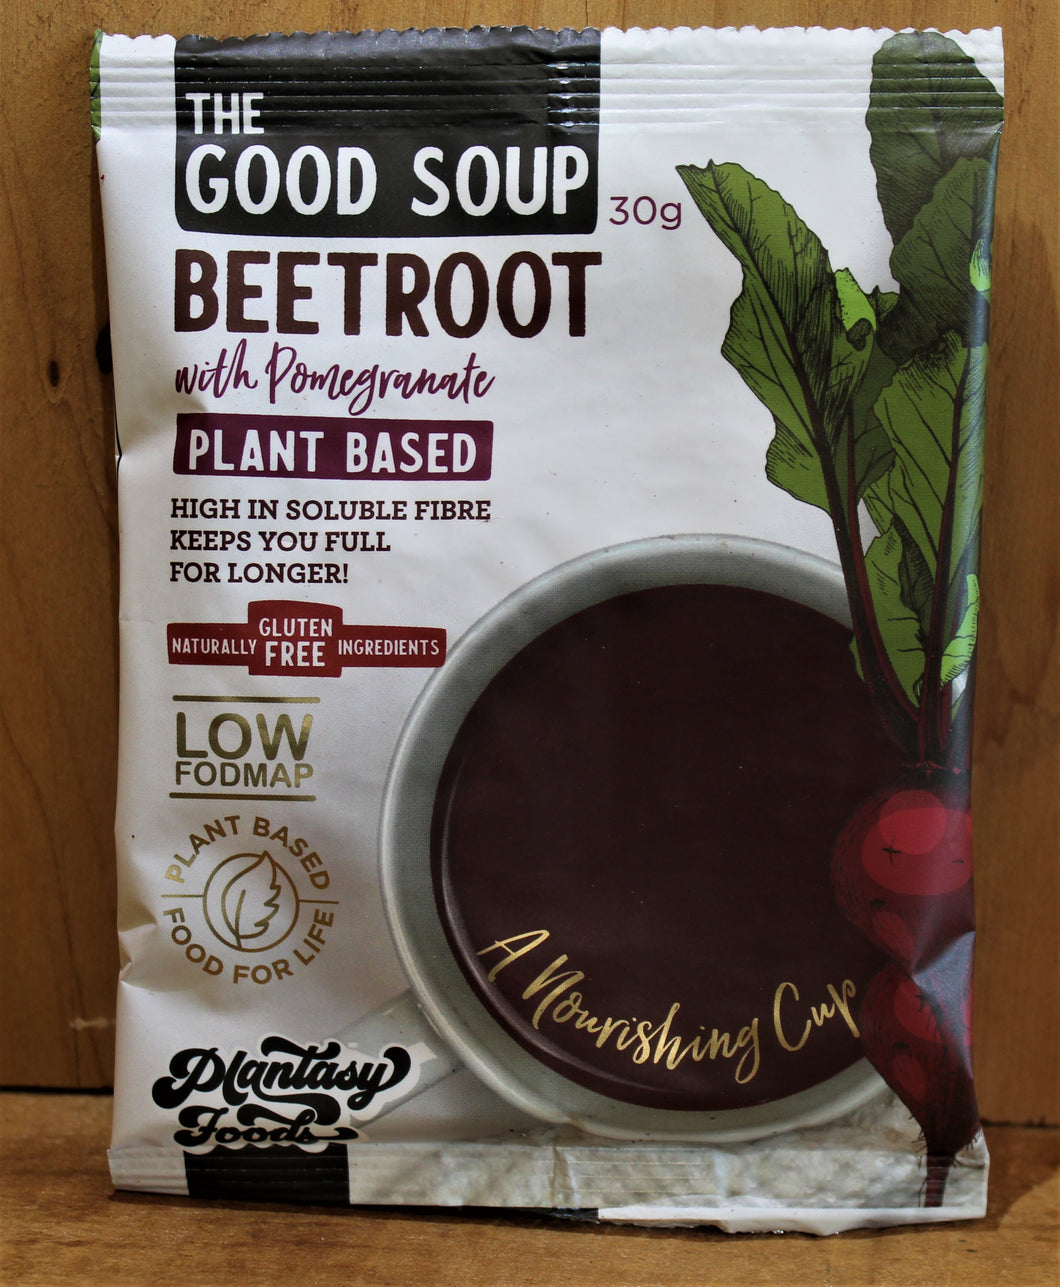 THE GOOD SOUP BEETROOT 30g